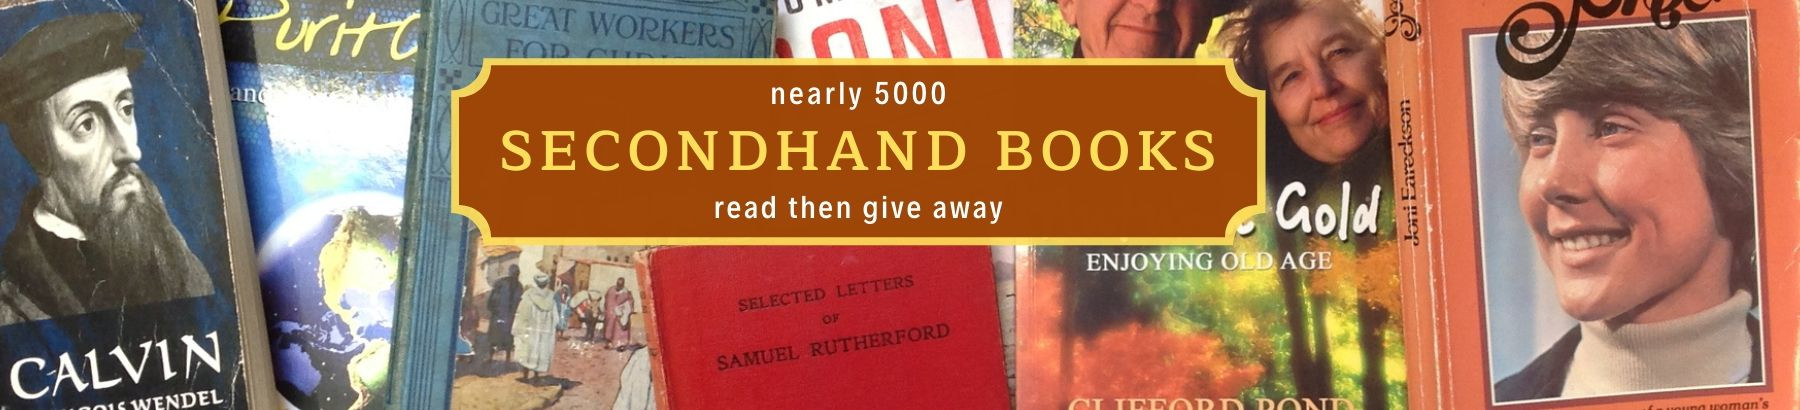 Secondhand books are perfect for giving away!